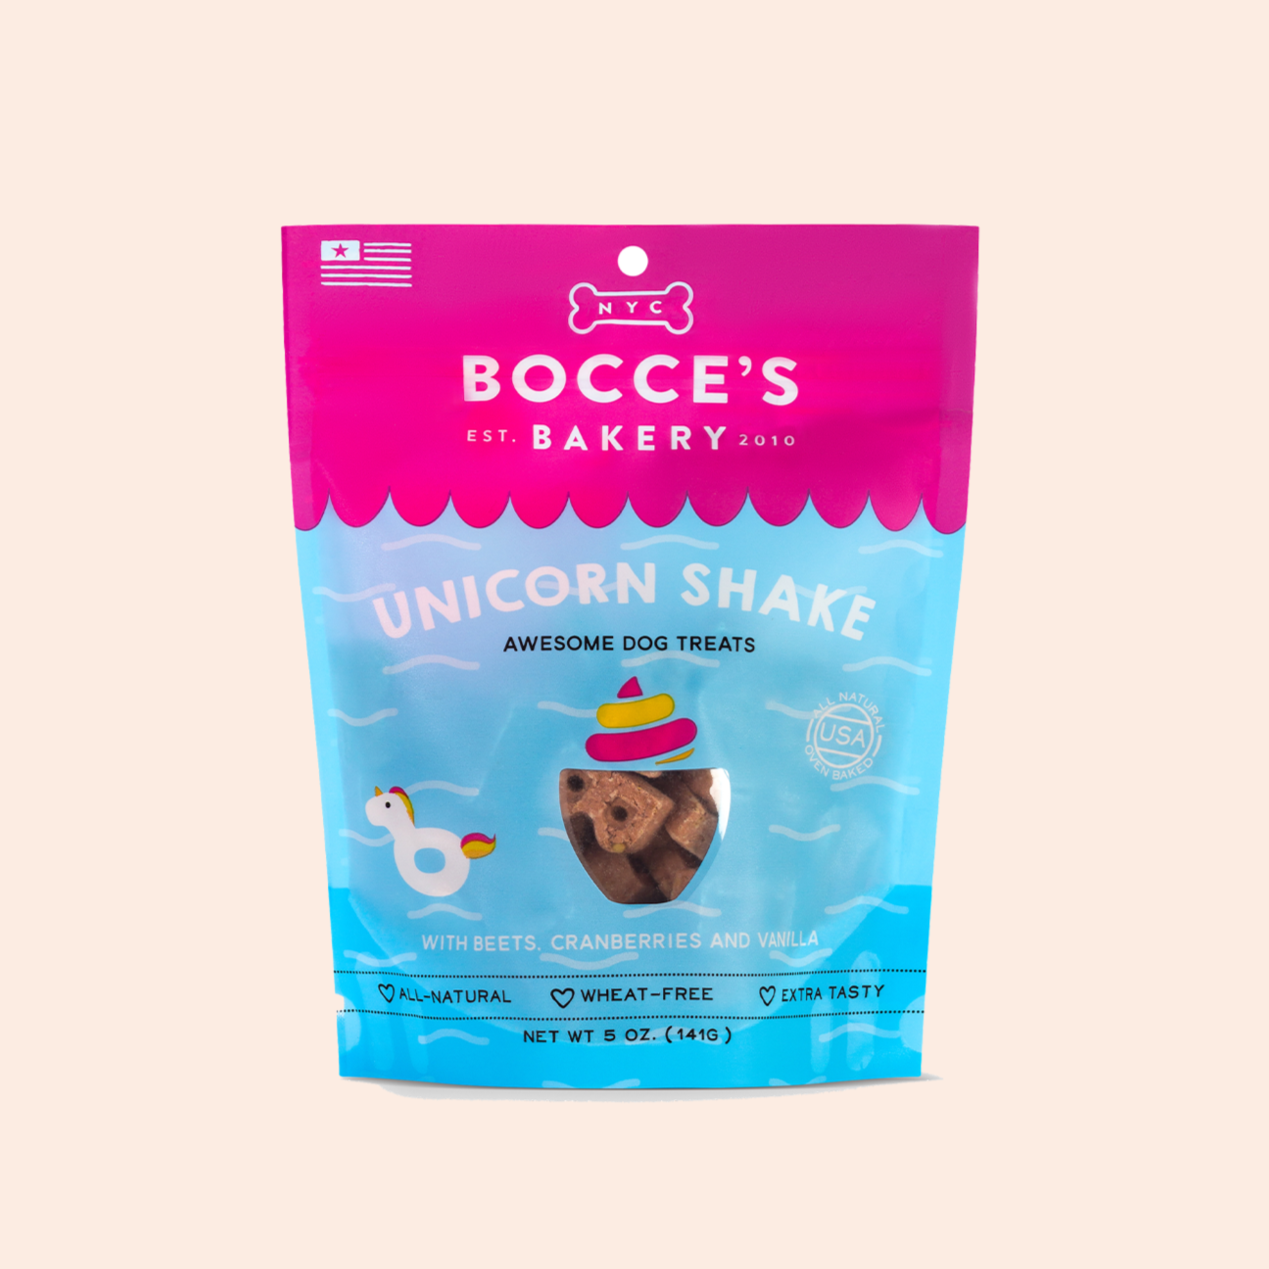 Unicorn Shake Awesome Dog Treats